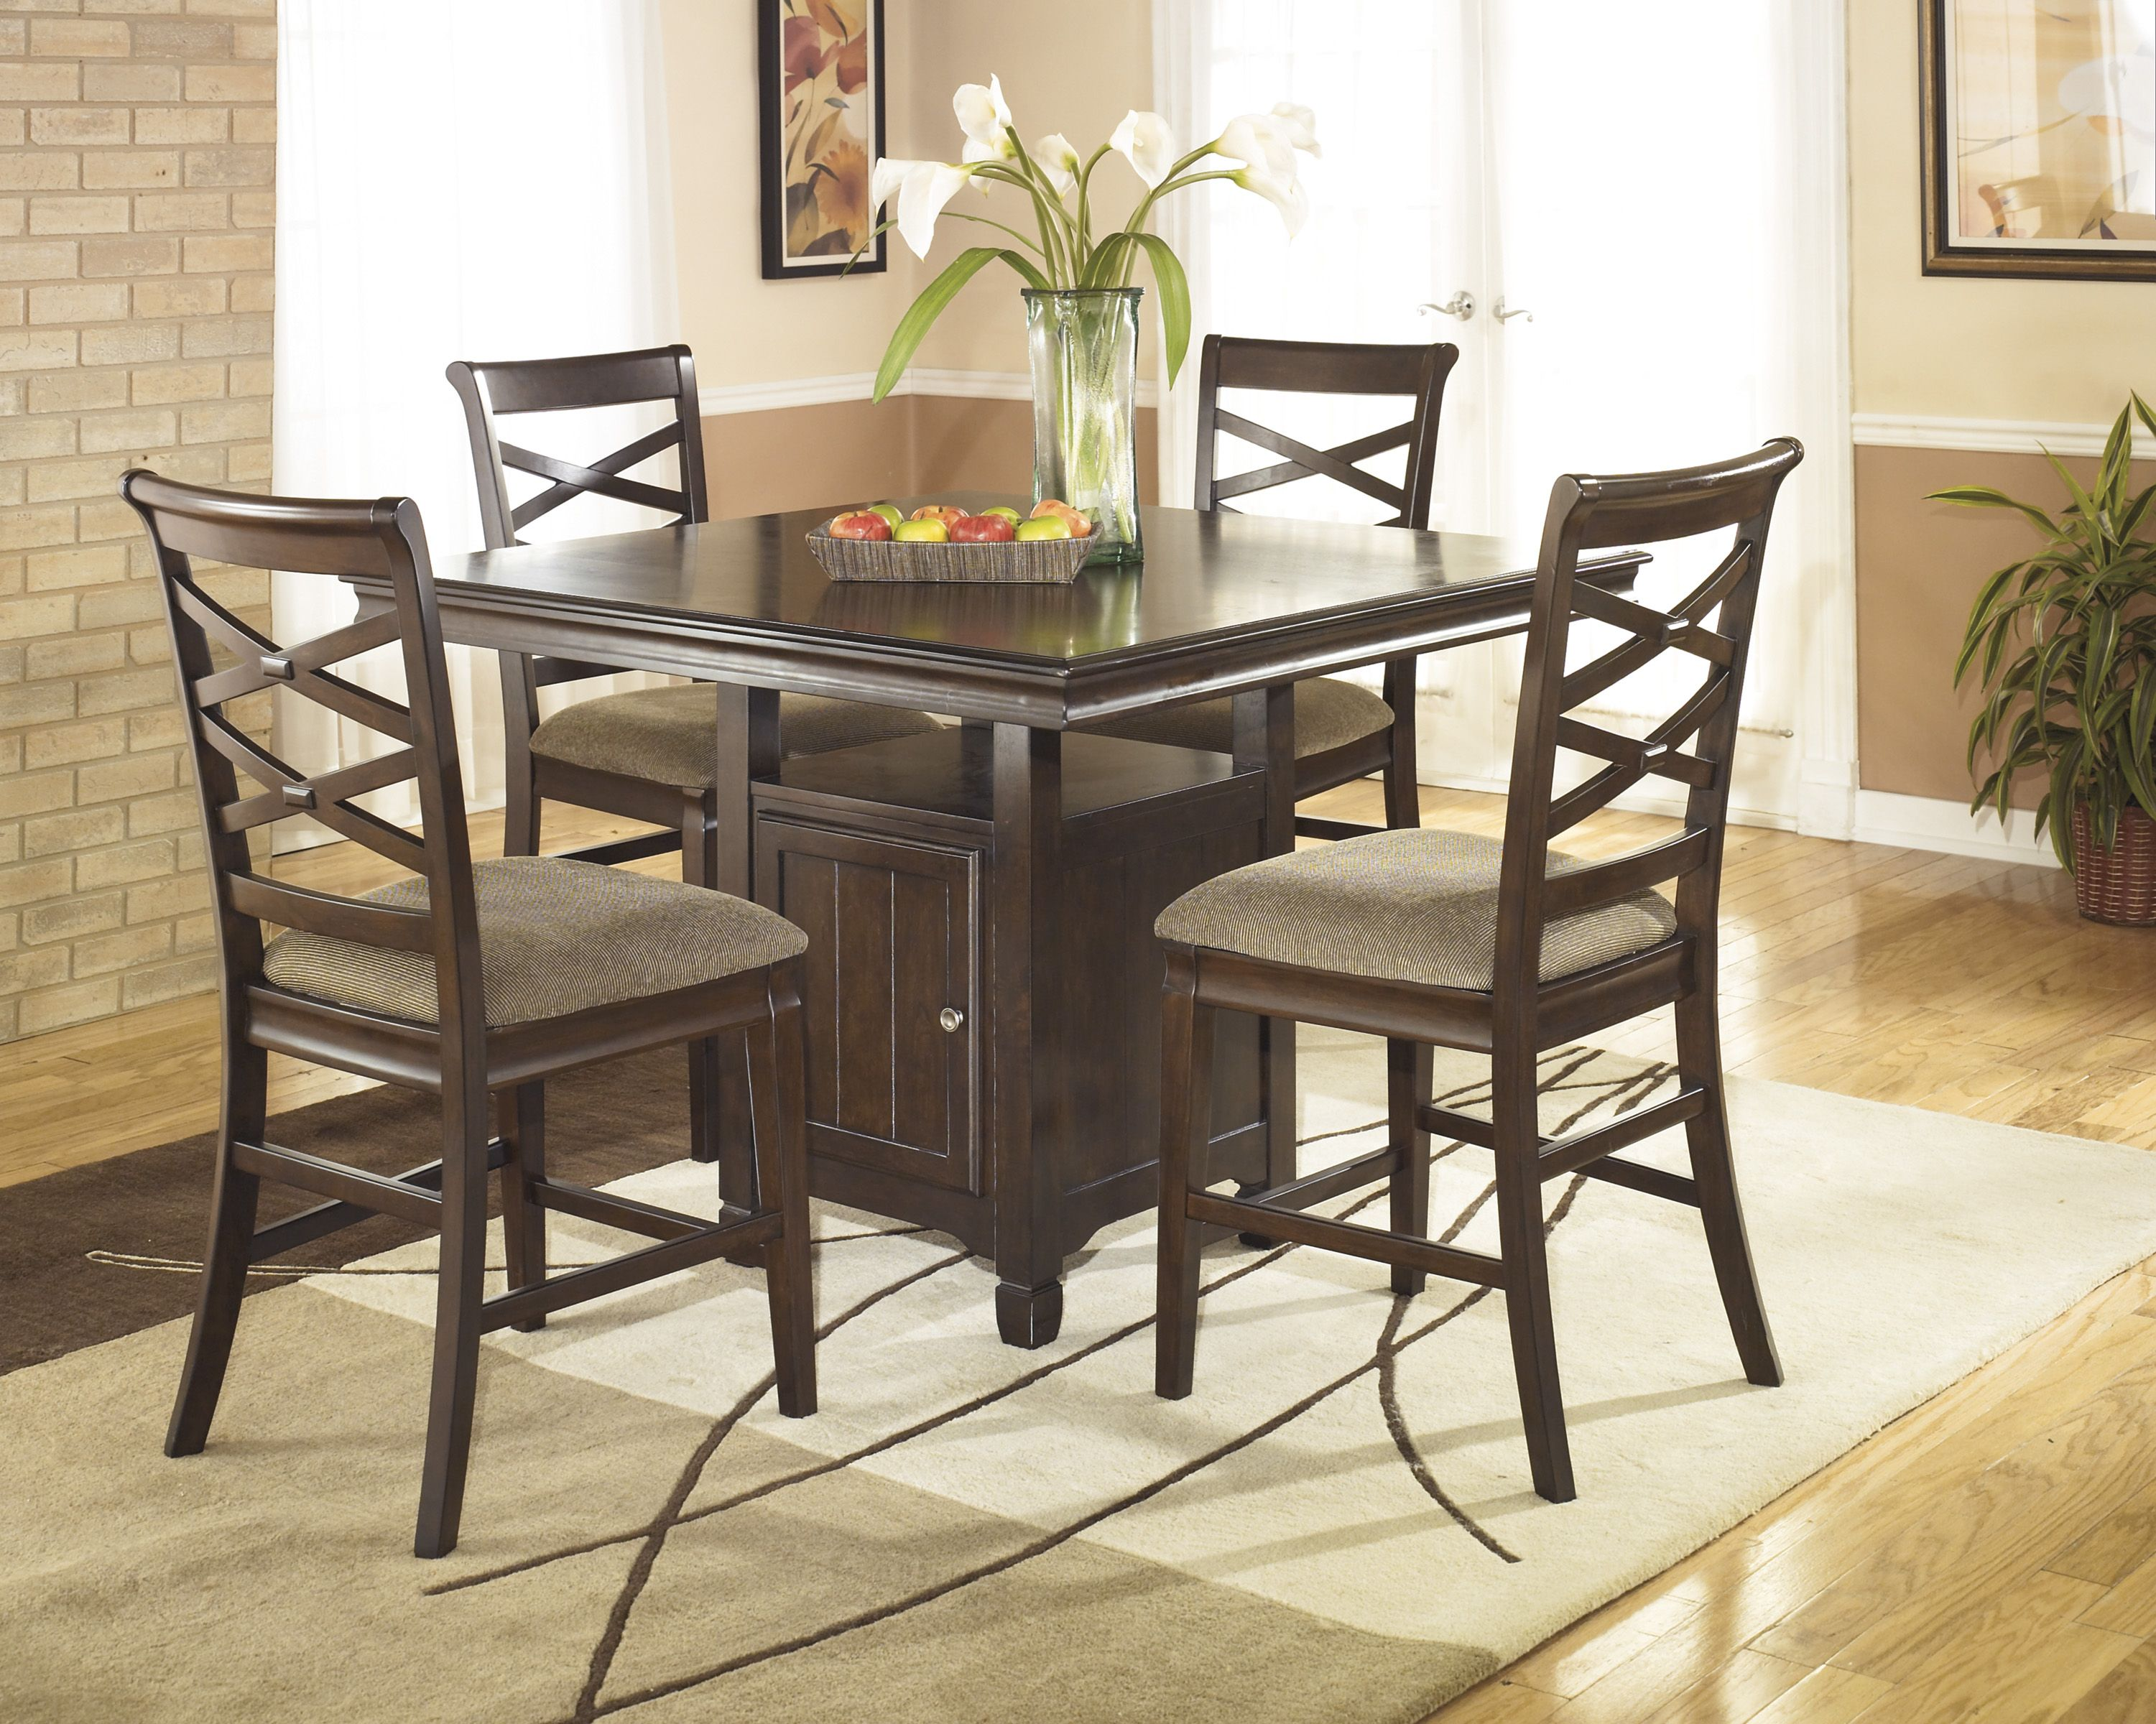 D12 in by Ashley Furniture in Wichita, KS - Square Dining Room